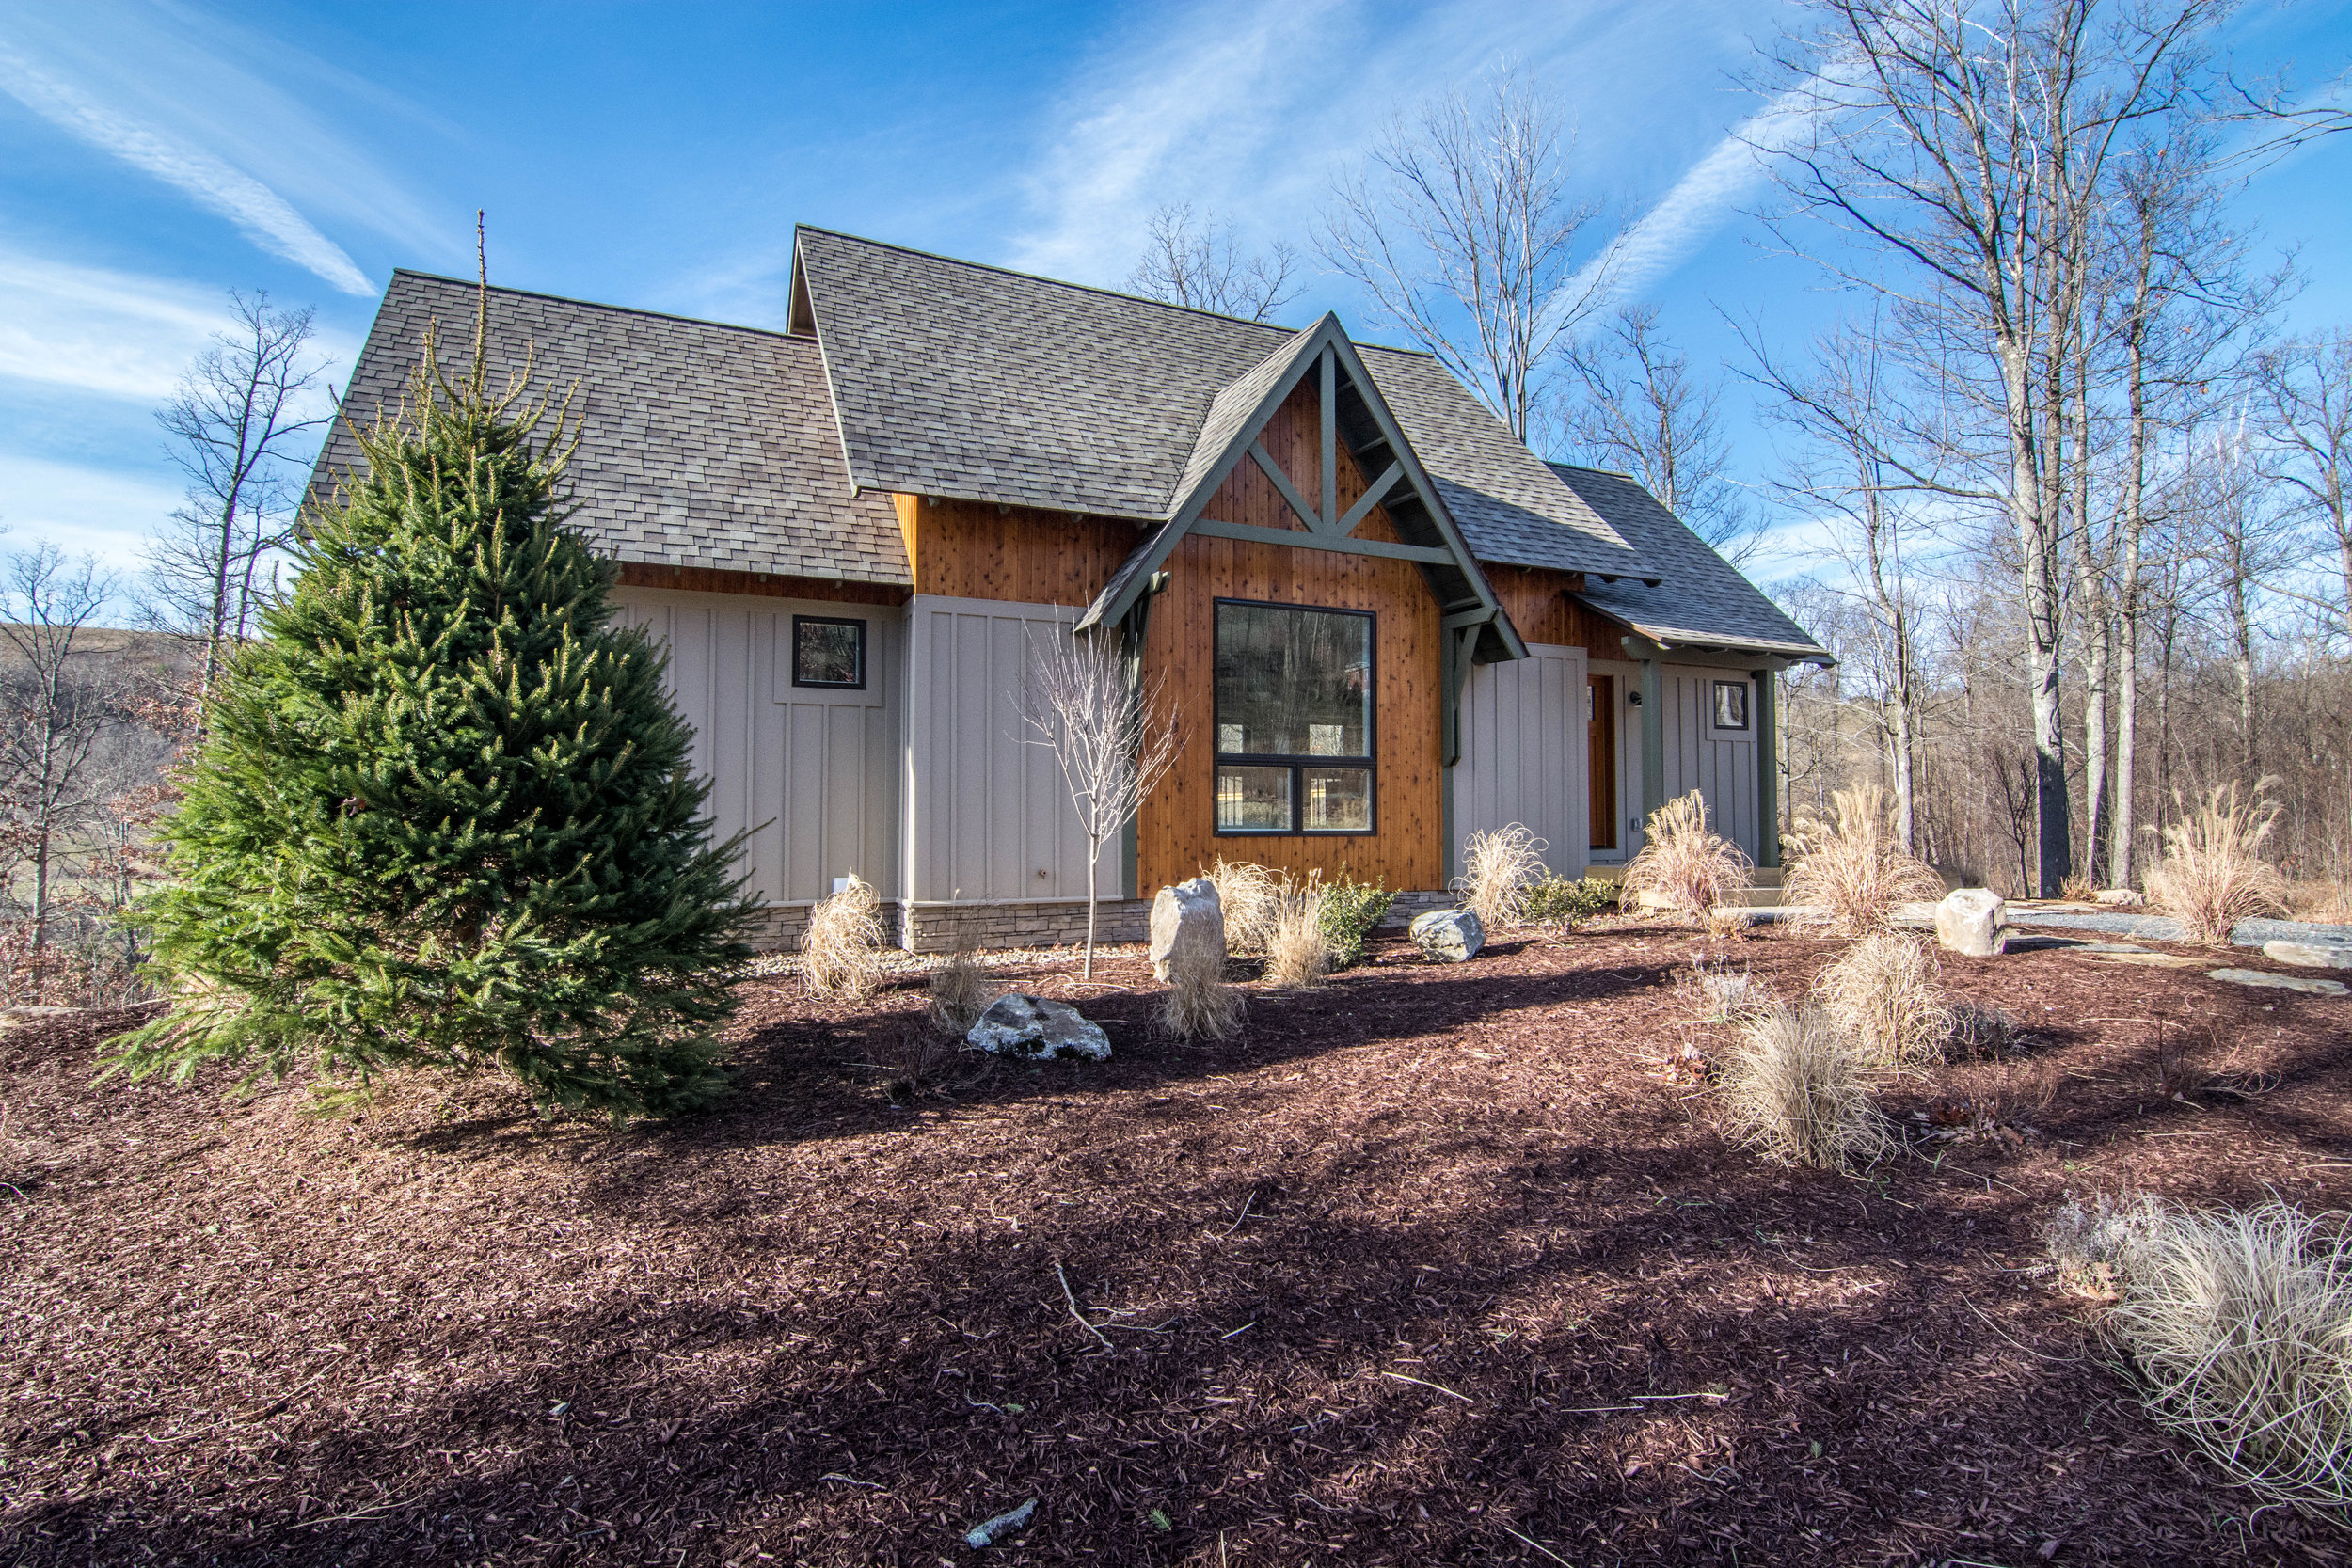 gosnell_builders_home_for_sale_ridgeview_valley12.jpg